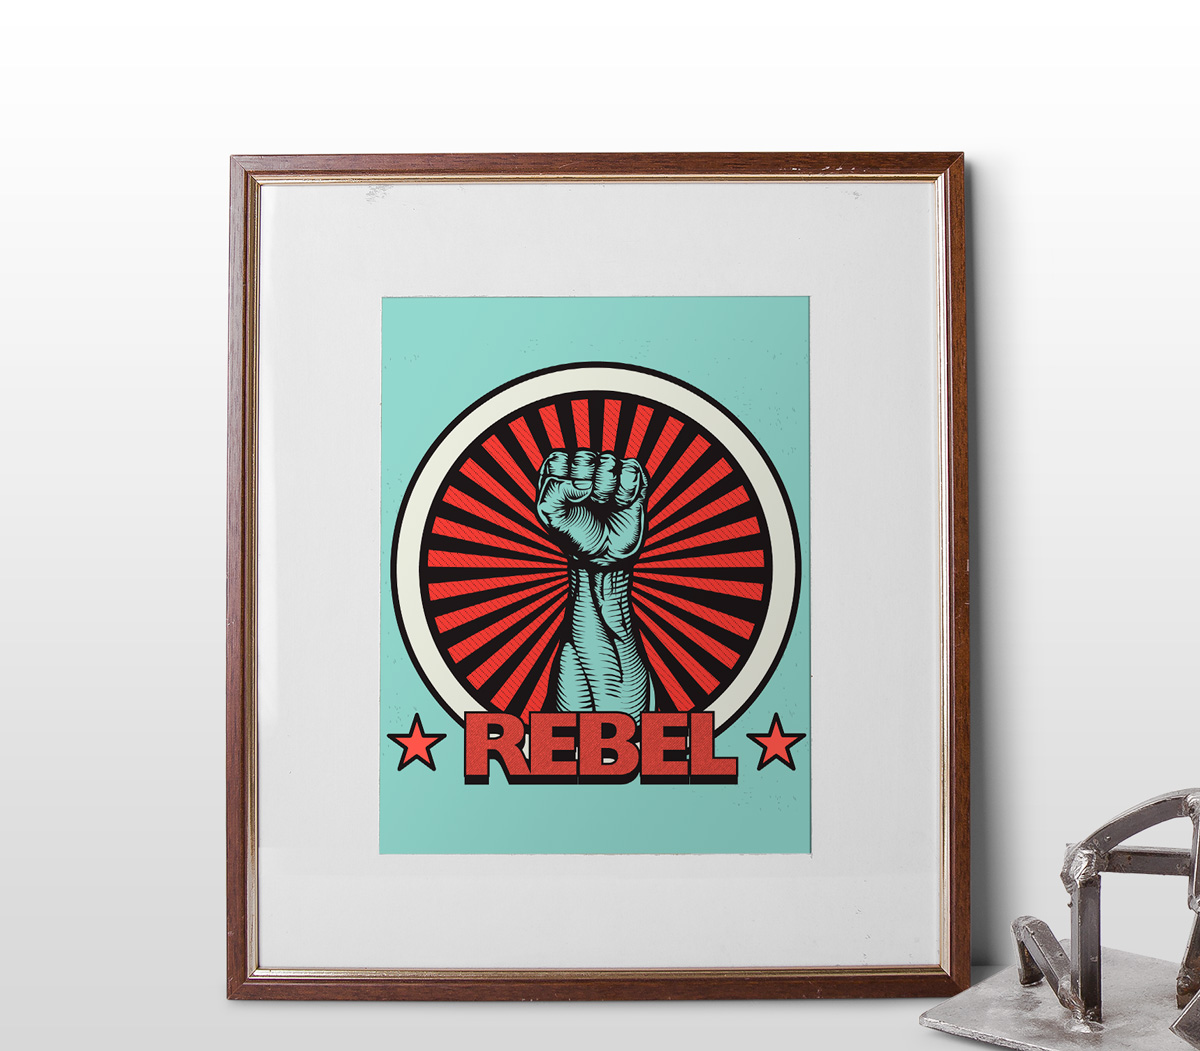 artwork-showcase-mock-up-vintage-vector